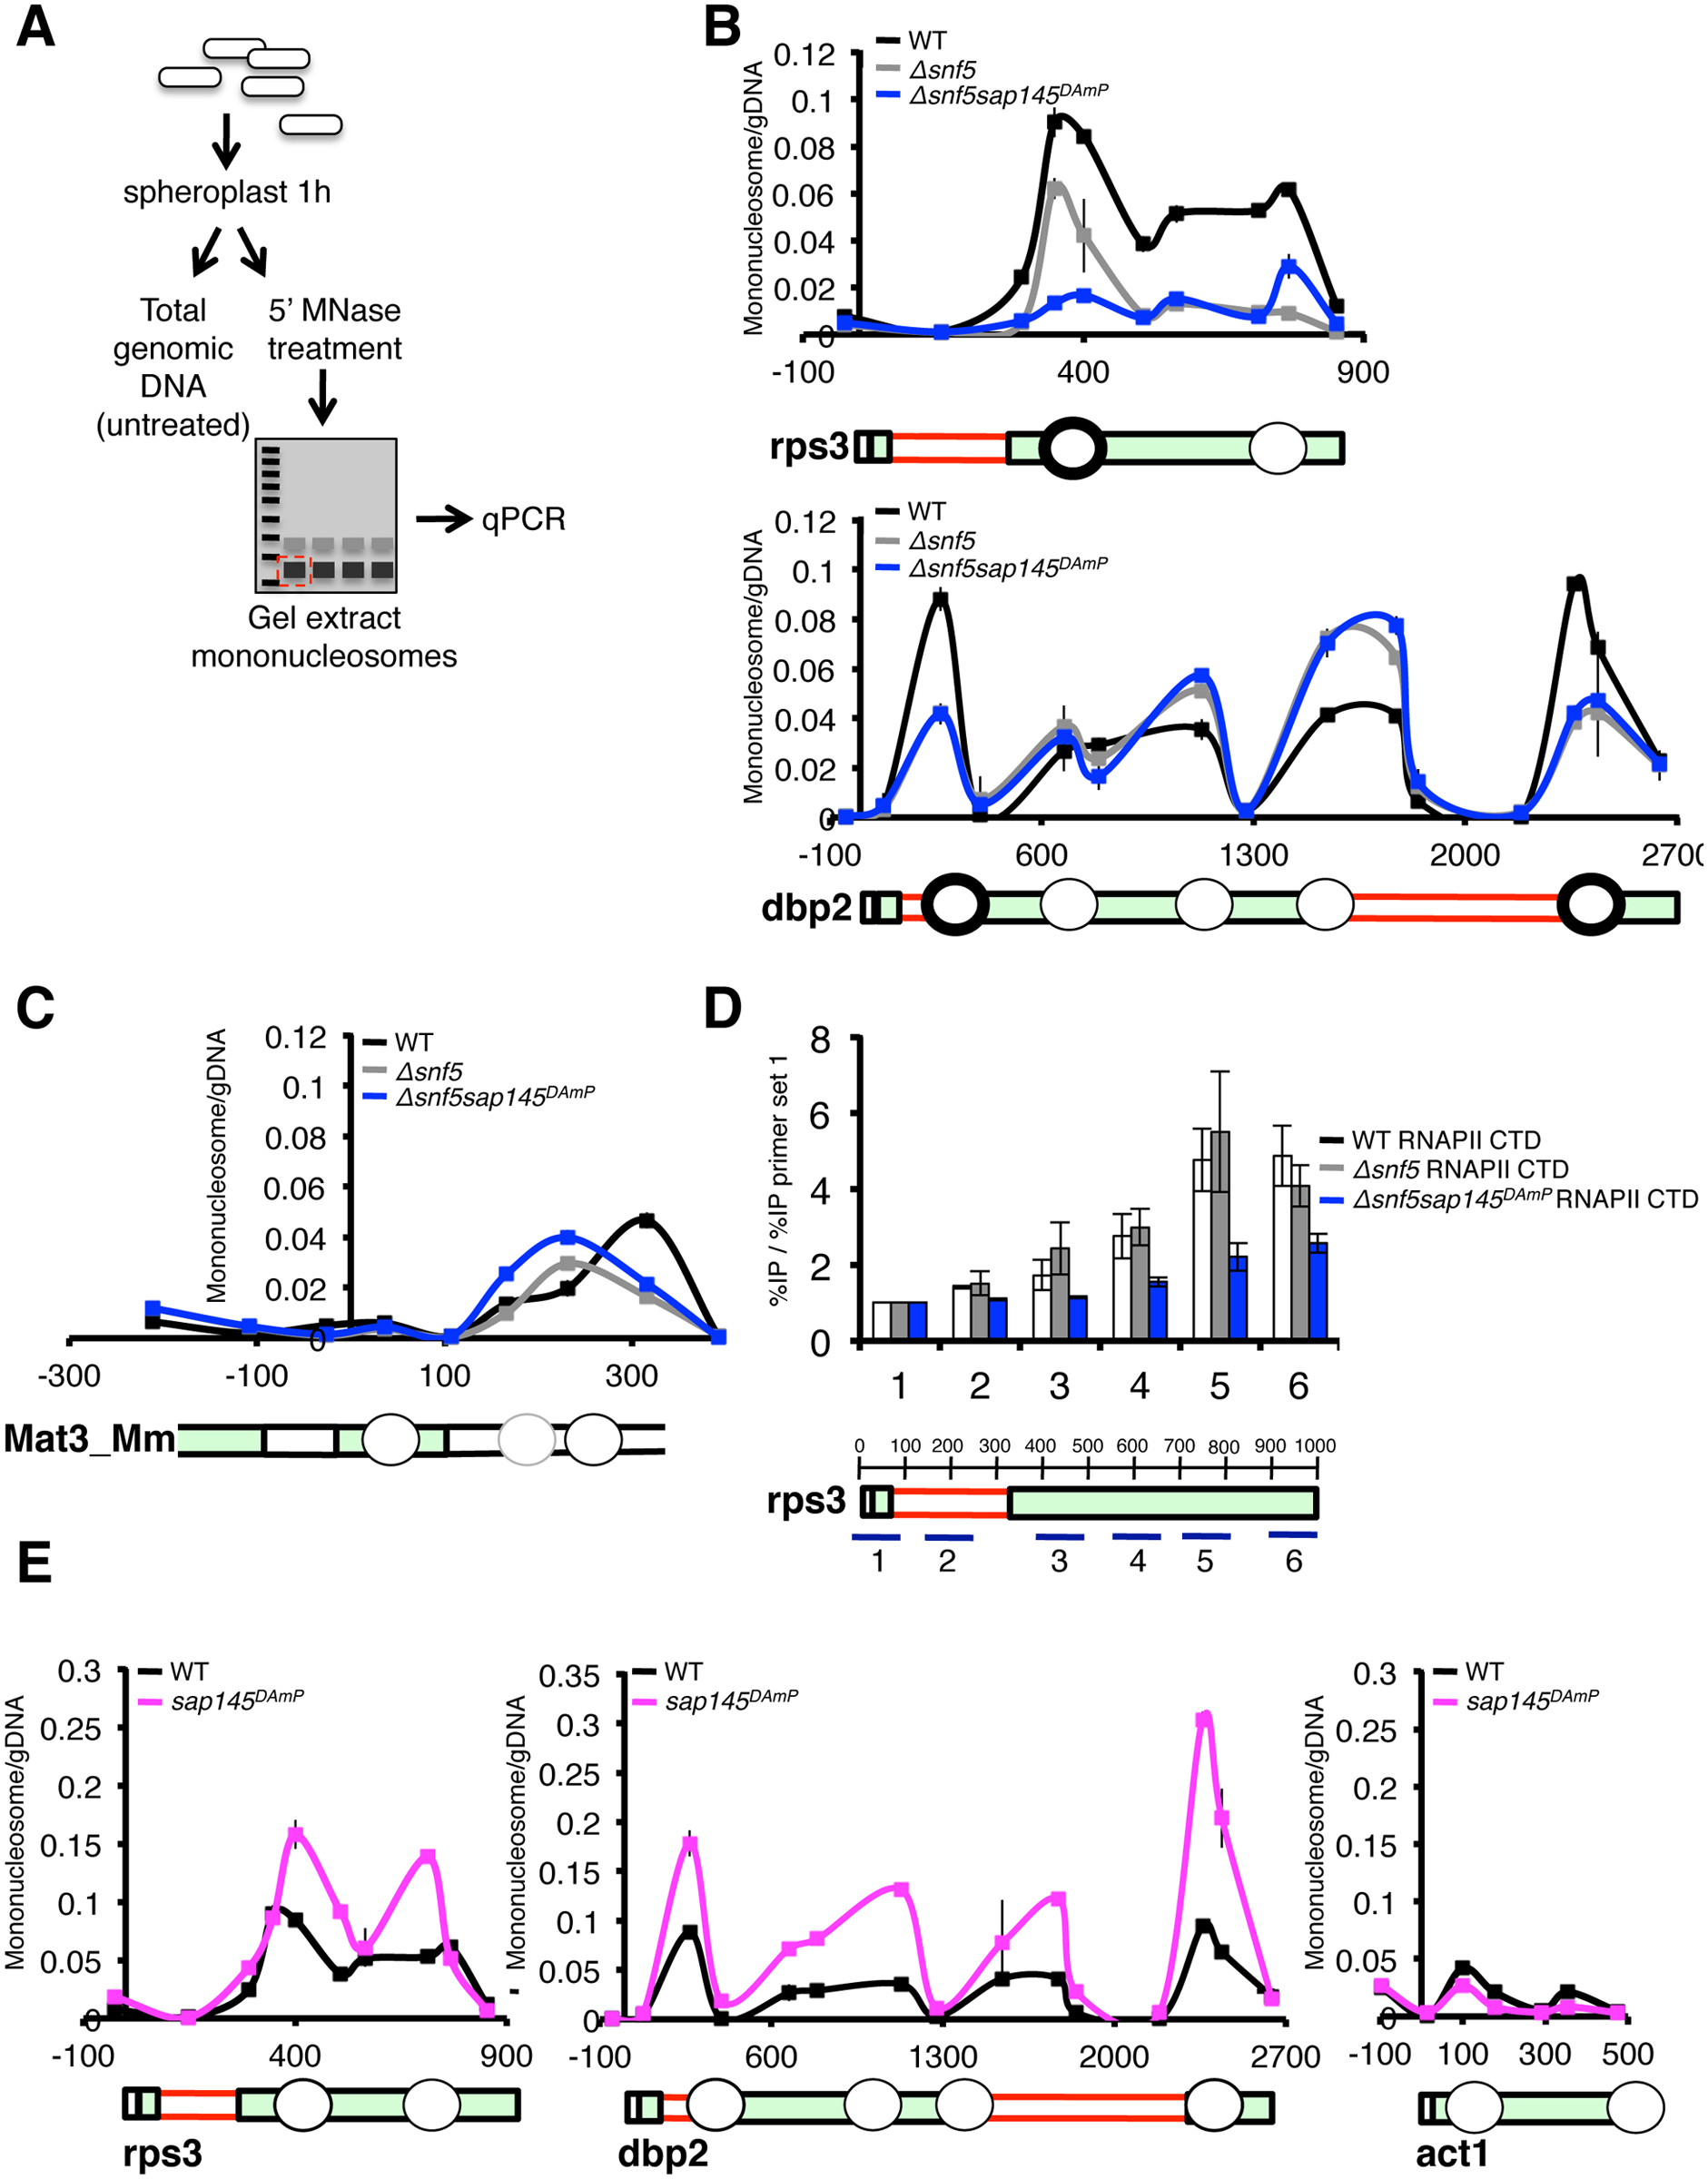 Nucleosome occupancy is altered at intron-containing genes by deletion of snf5 and overexpression of <i>sap145</i>.